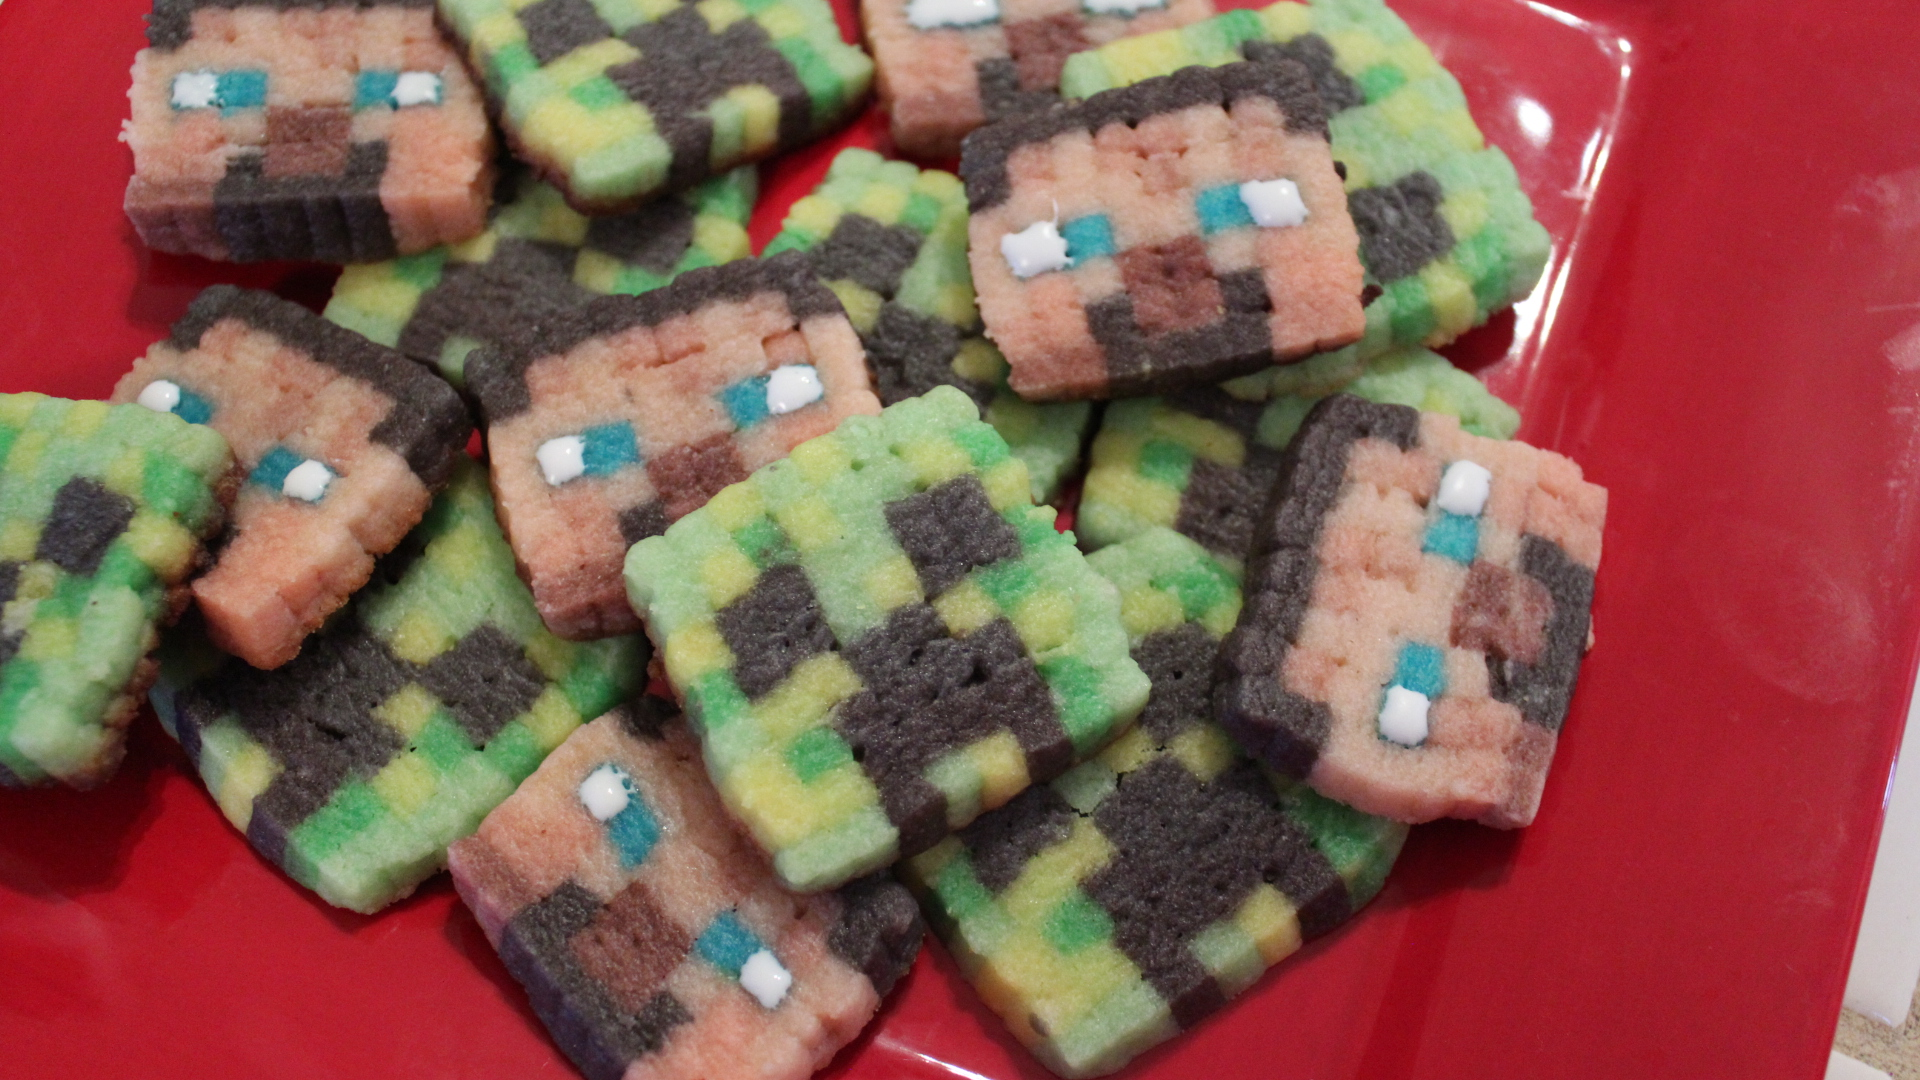 Cookies Minecraft Wallpaper Image